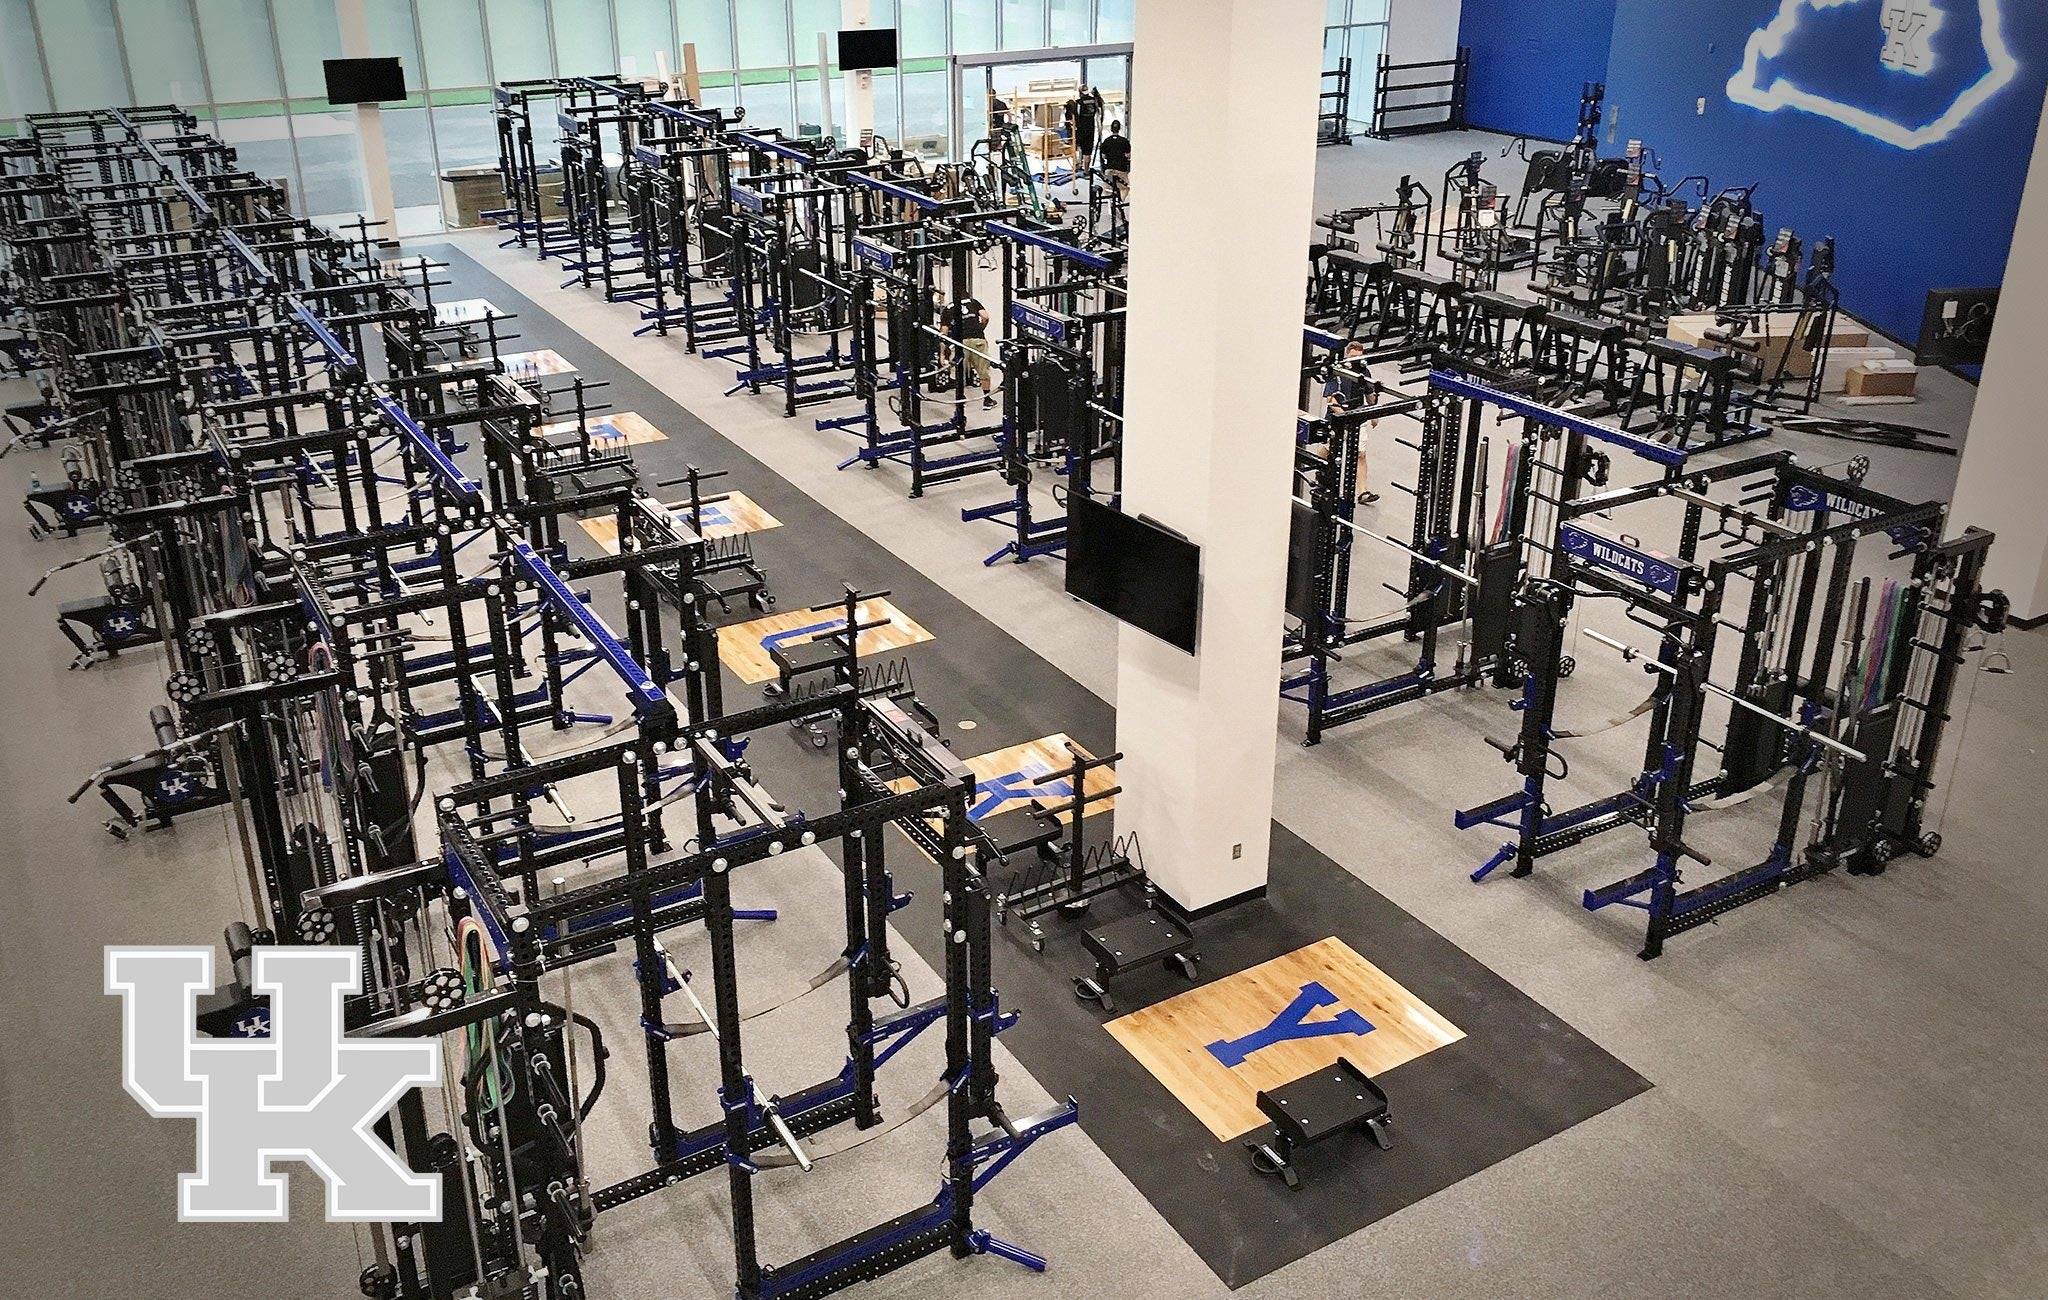 University of Kentucky Sorinex strength and conditioning facility